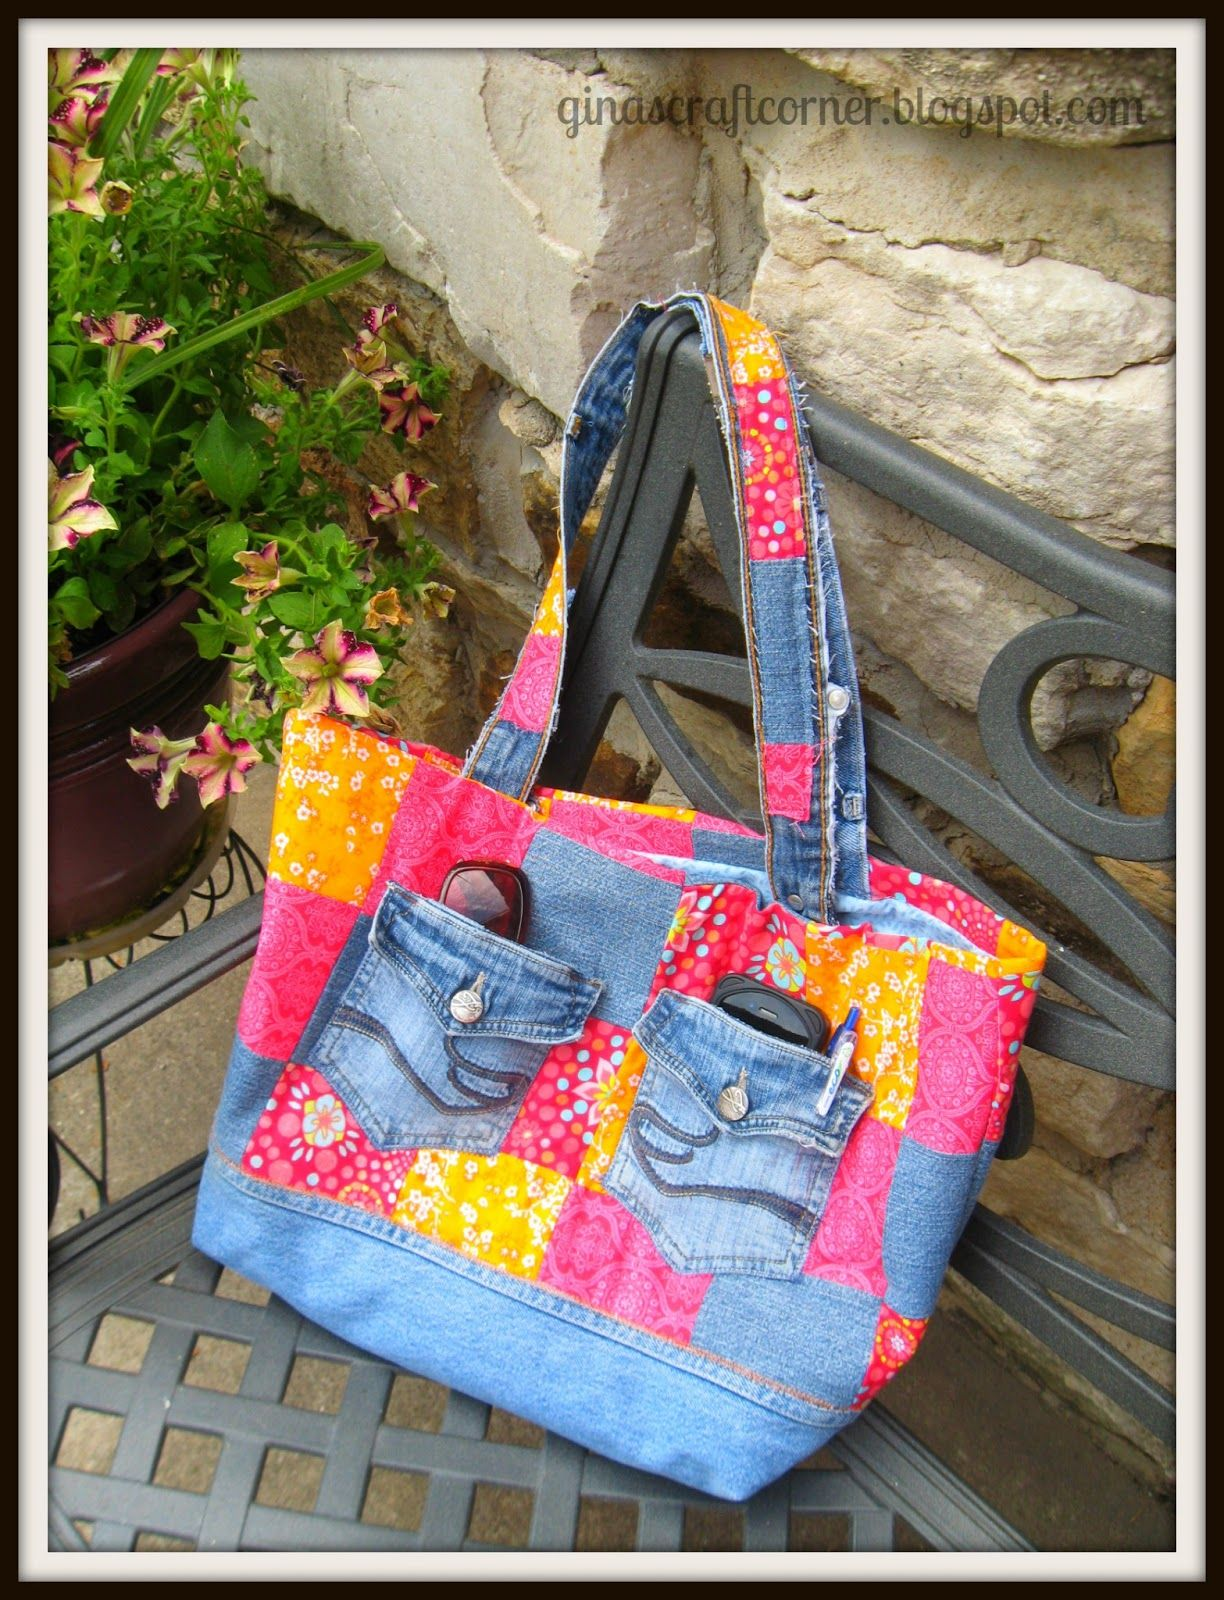 Gina's Craft Corner: My 'Casual Friday' Bag: A Blue Jean Upcycle